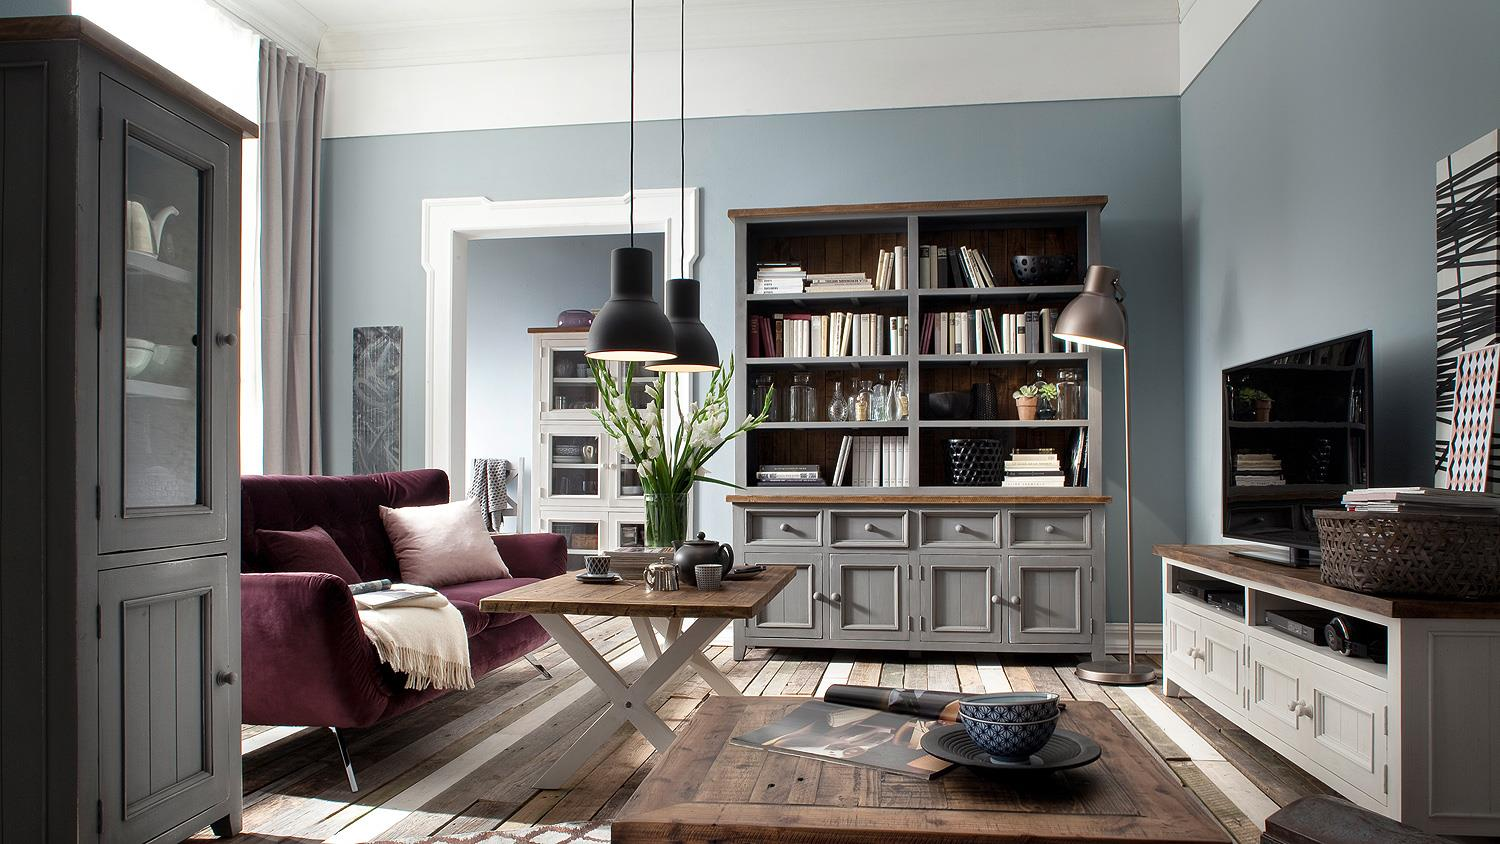 regal byron kiefer massiv in antik grau vintage braun. Black Bedroom Furniture Sets. Home Design Ideas